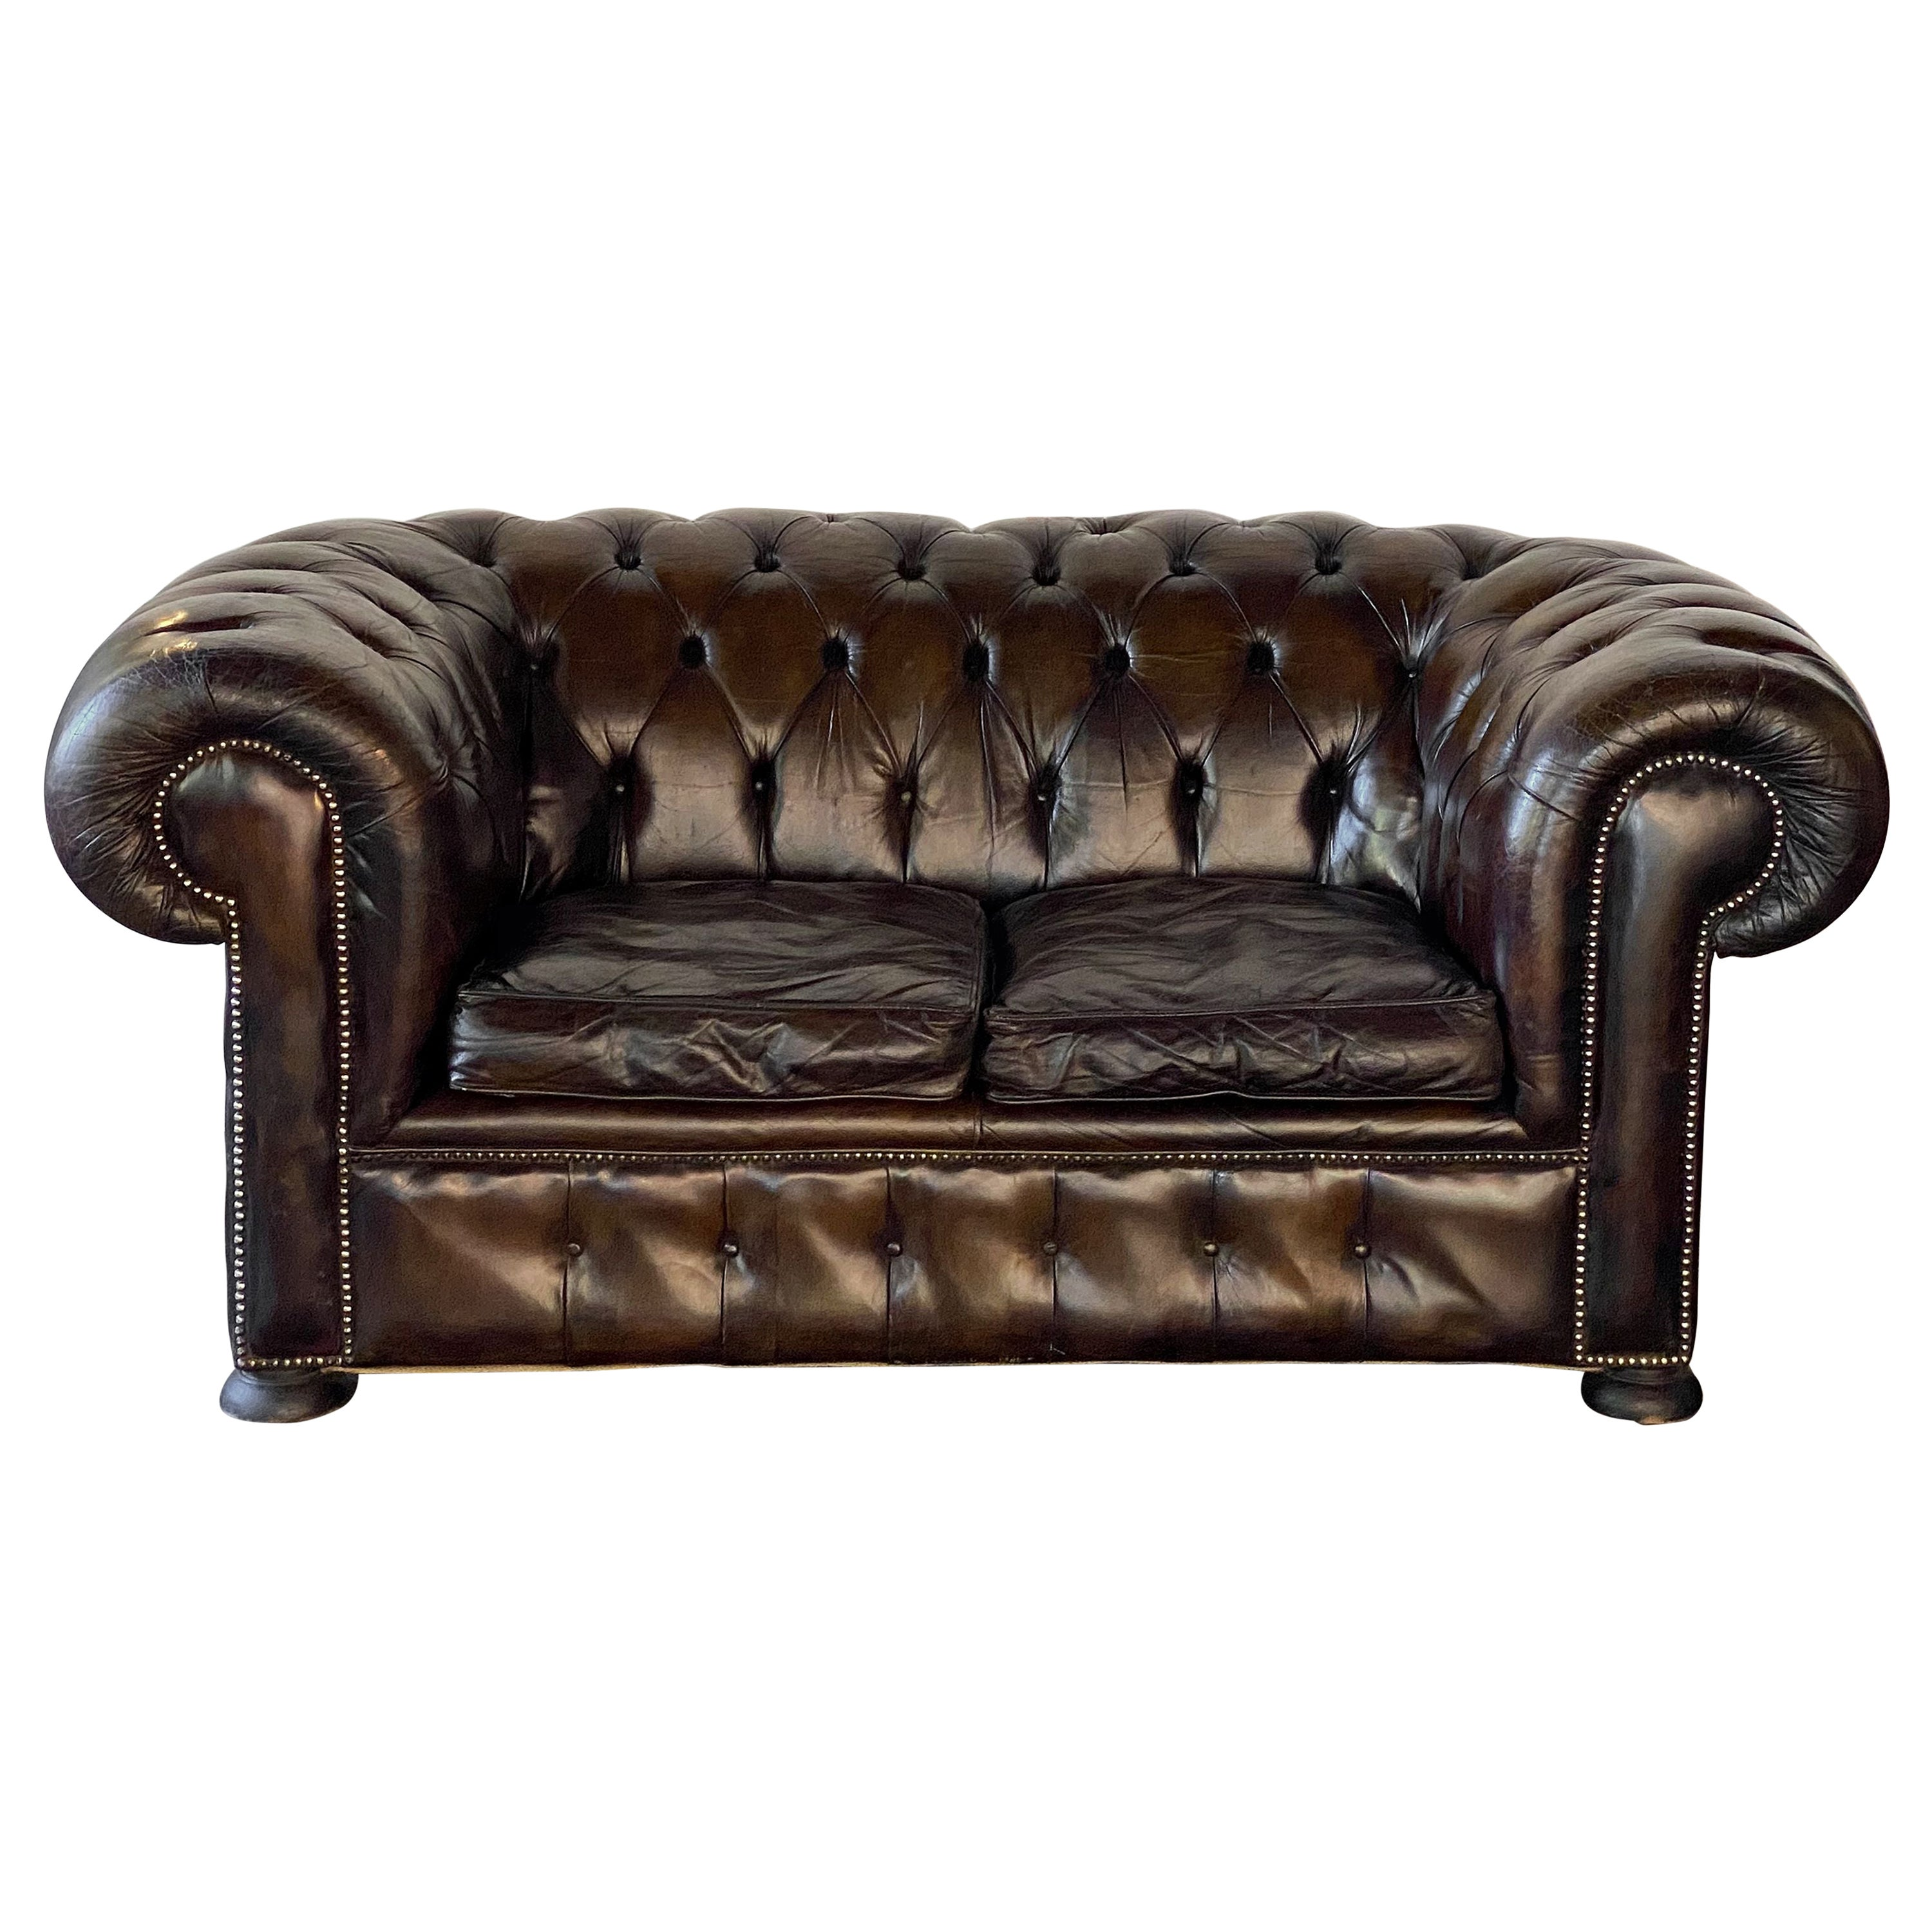 English Chesterfield Sofa of Tufted Leather